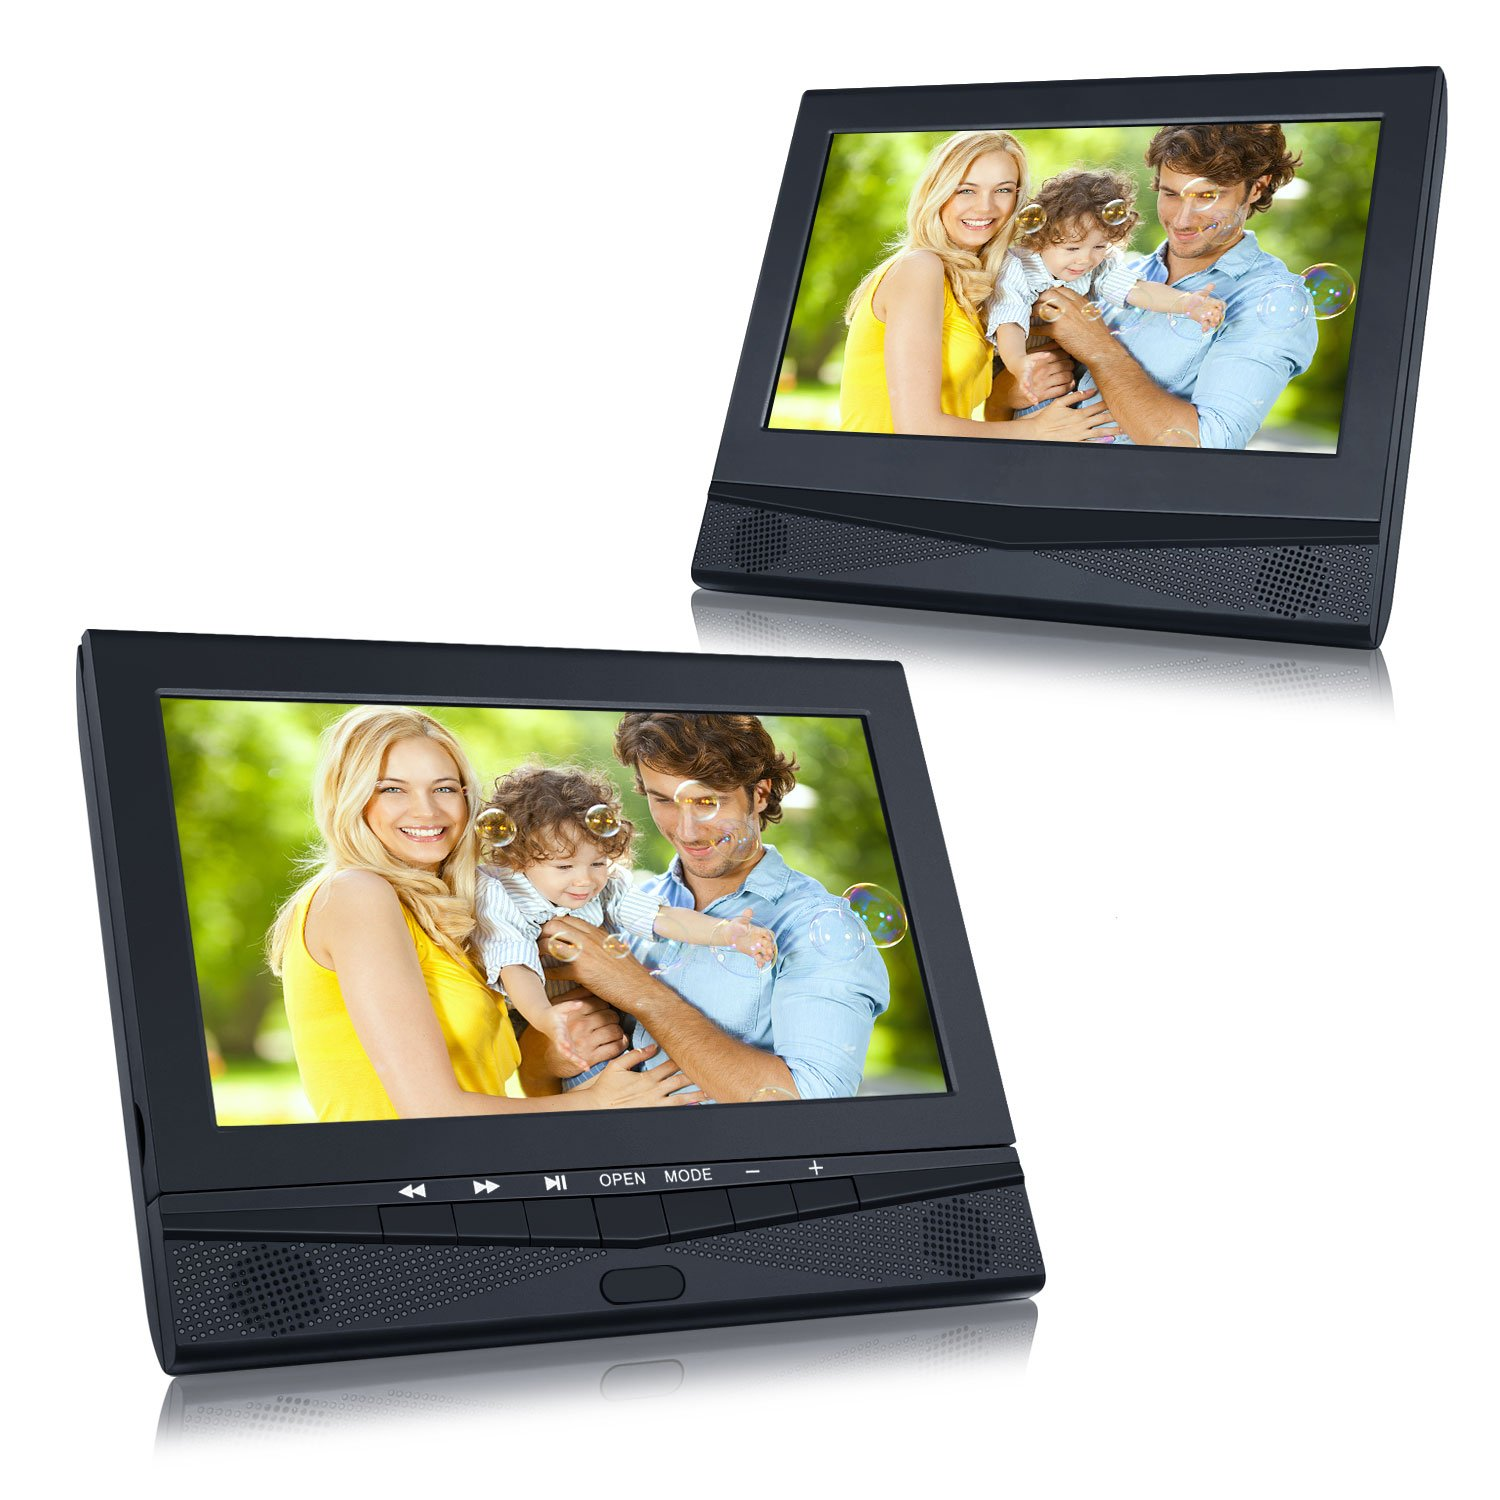 dvd player auto tragbarer fernseher mit 2 10 1 zoll. Black Bedroom Furniture Sets. Home Design Ideas